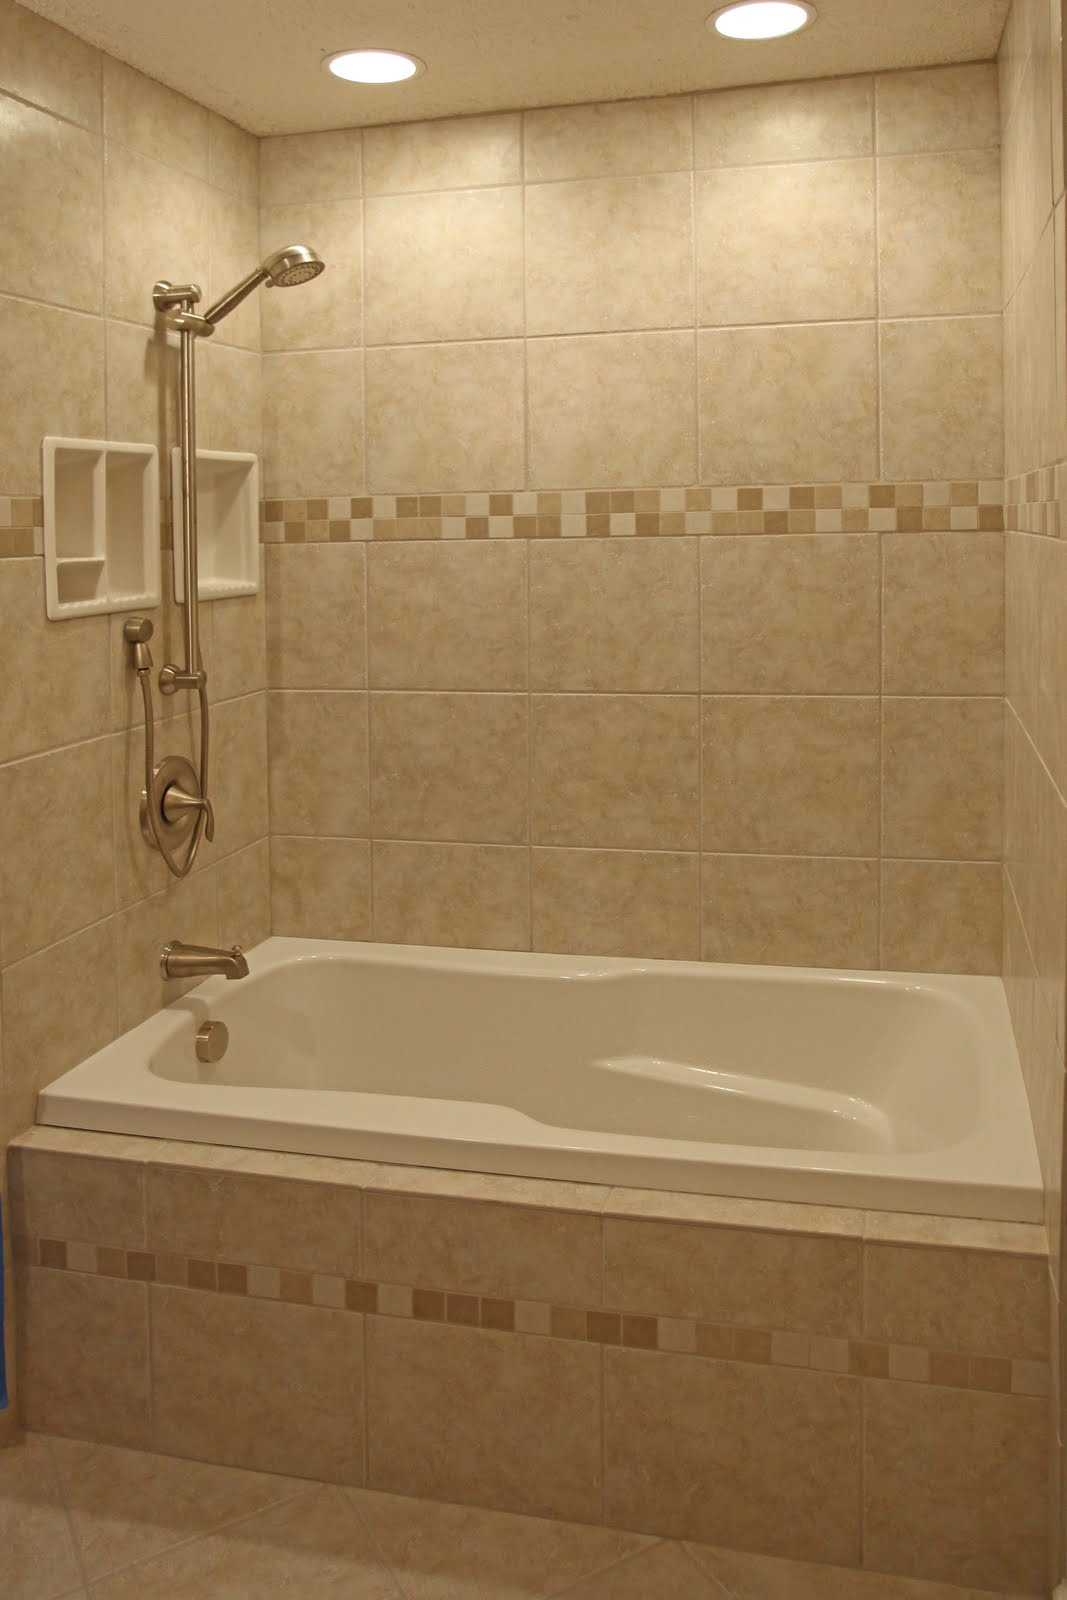 Bathroom remodeling design ideas tile shower niches for Bathroom design ideas